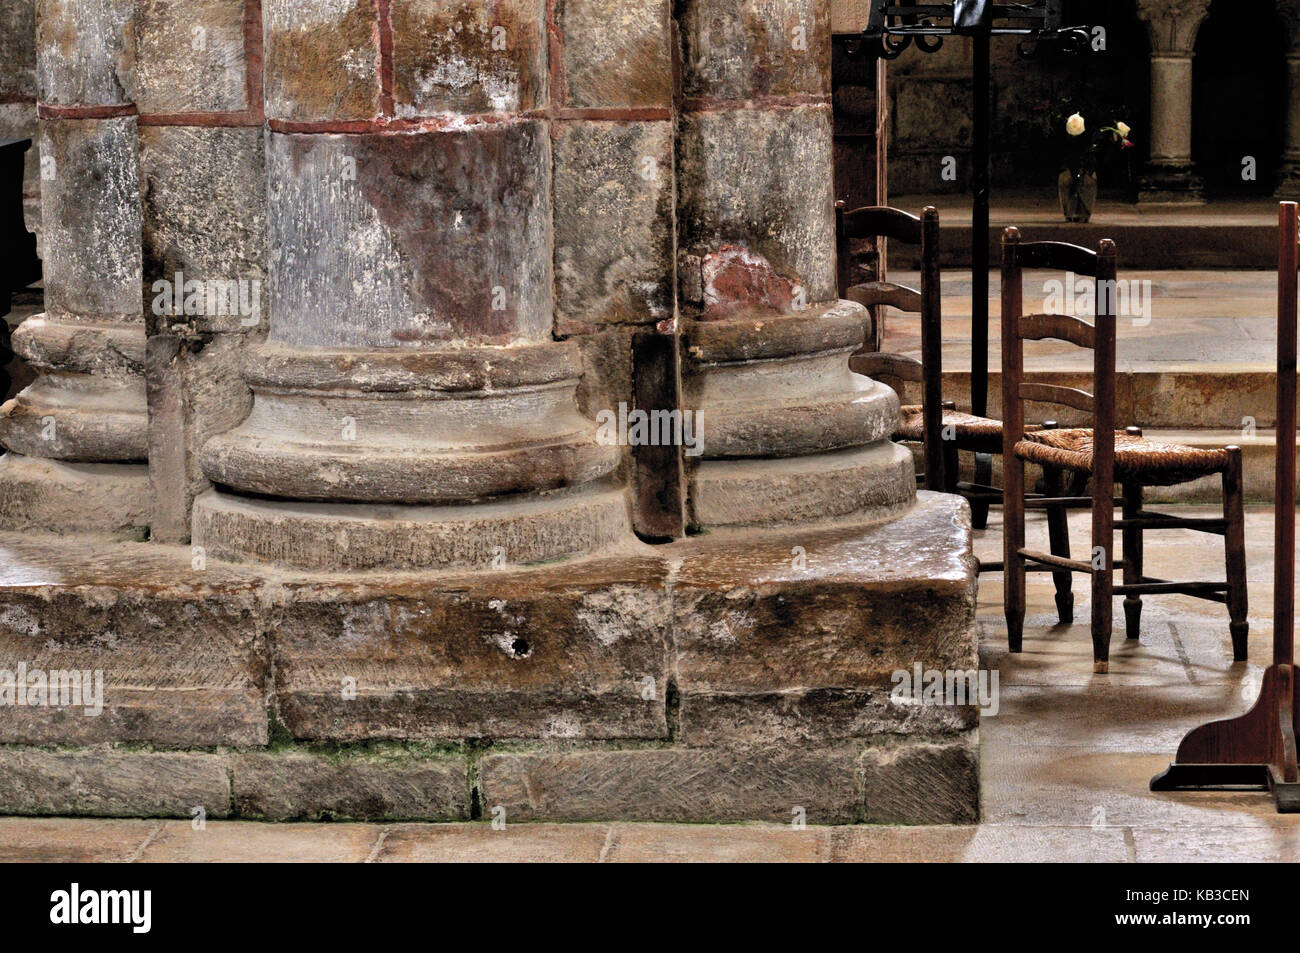 France, Midi-Pyrénées, detail of a Romanesque pillar in the abbey church St. Foy in Conques, - Stock Image